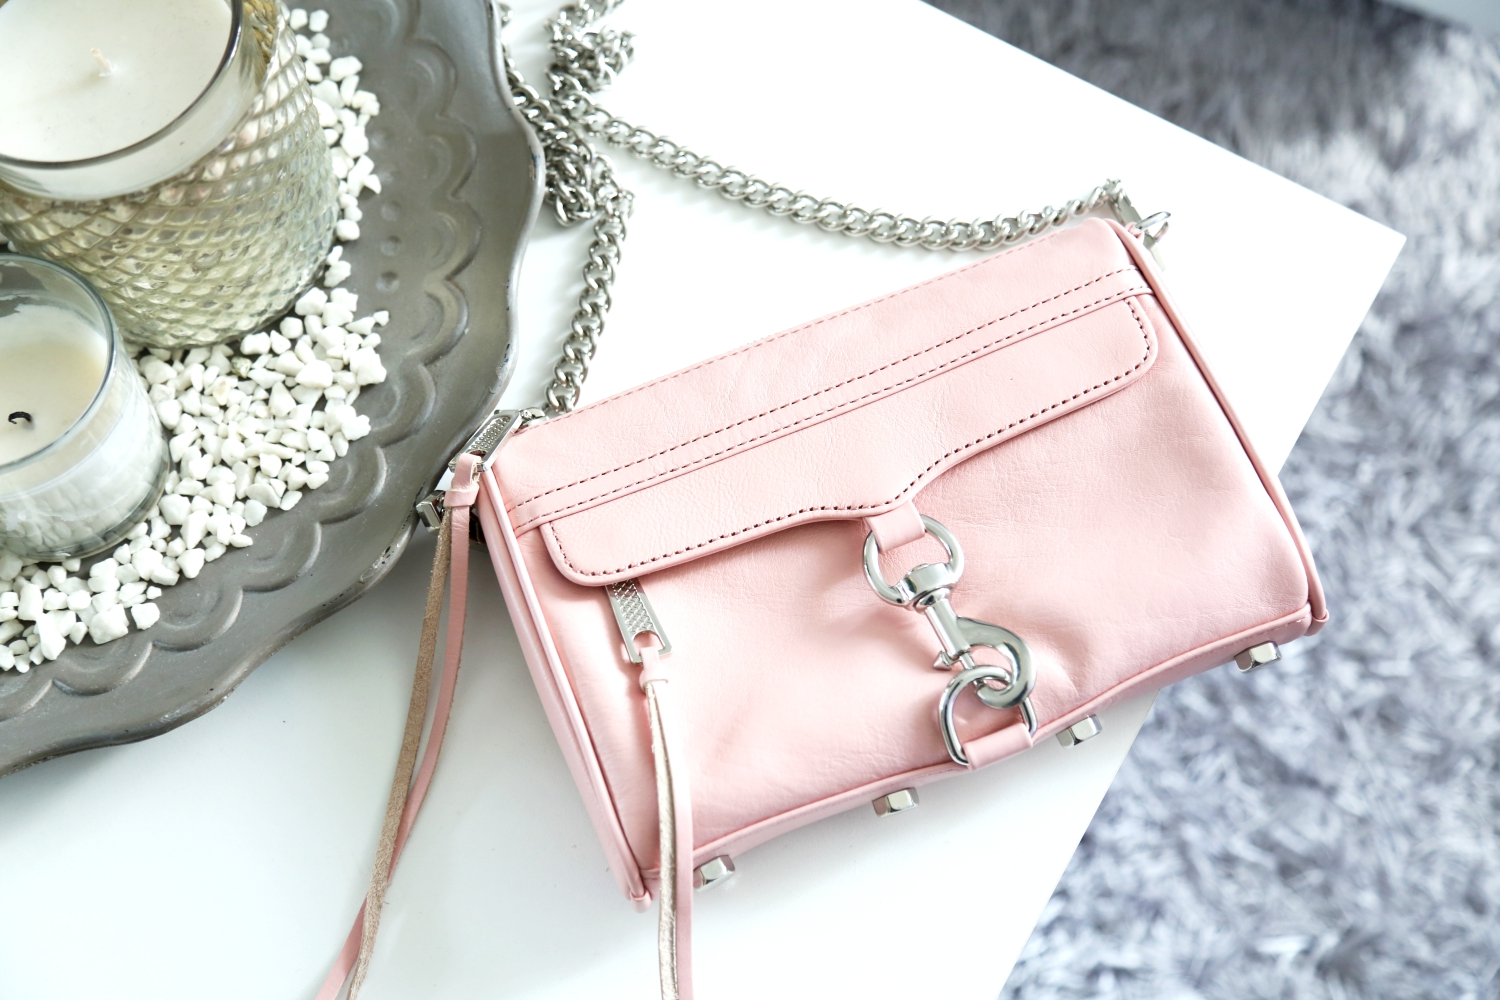 rebeccaminkoff-mini-mac-bag-peach-pink